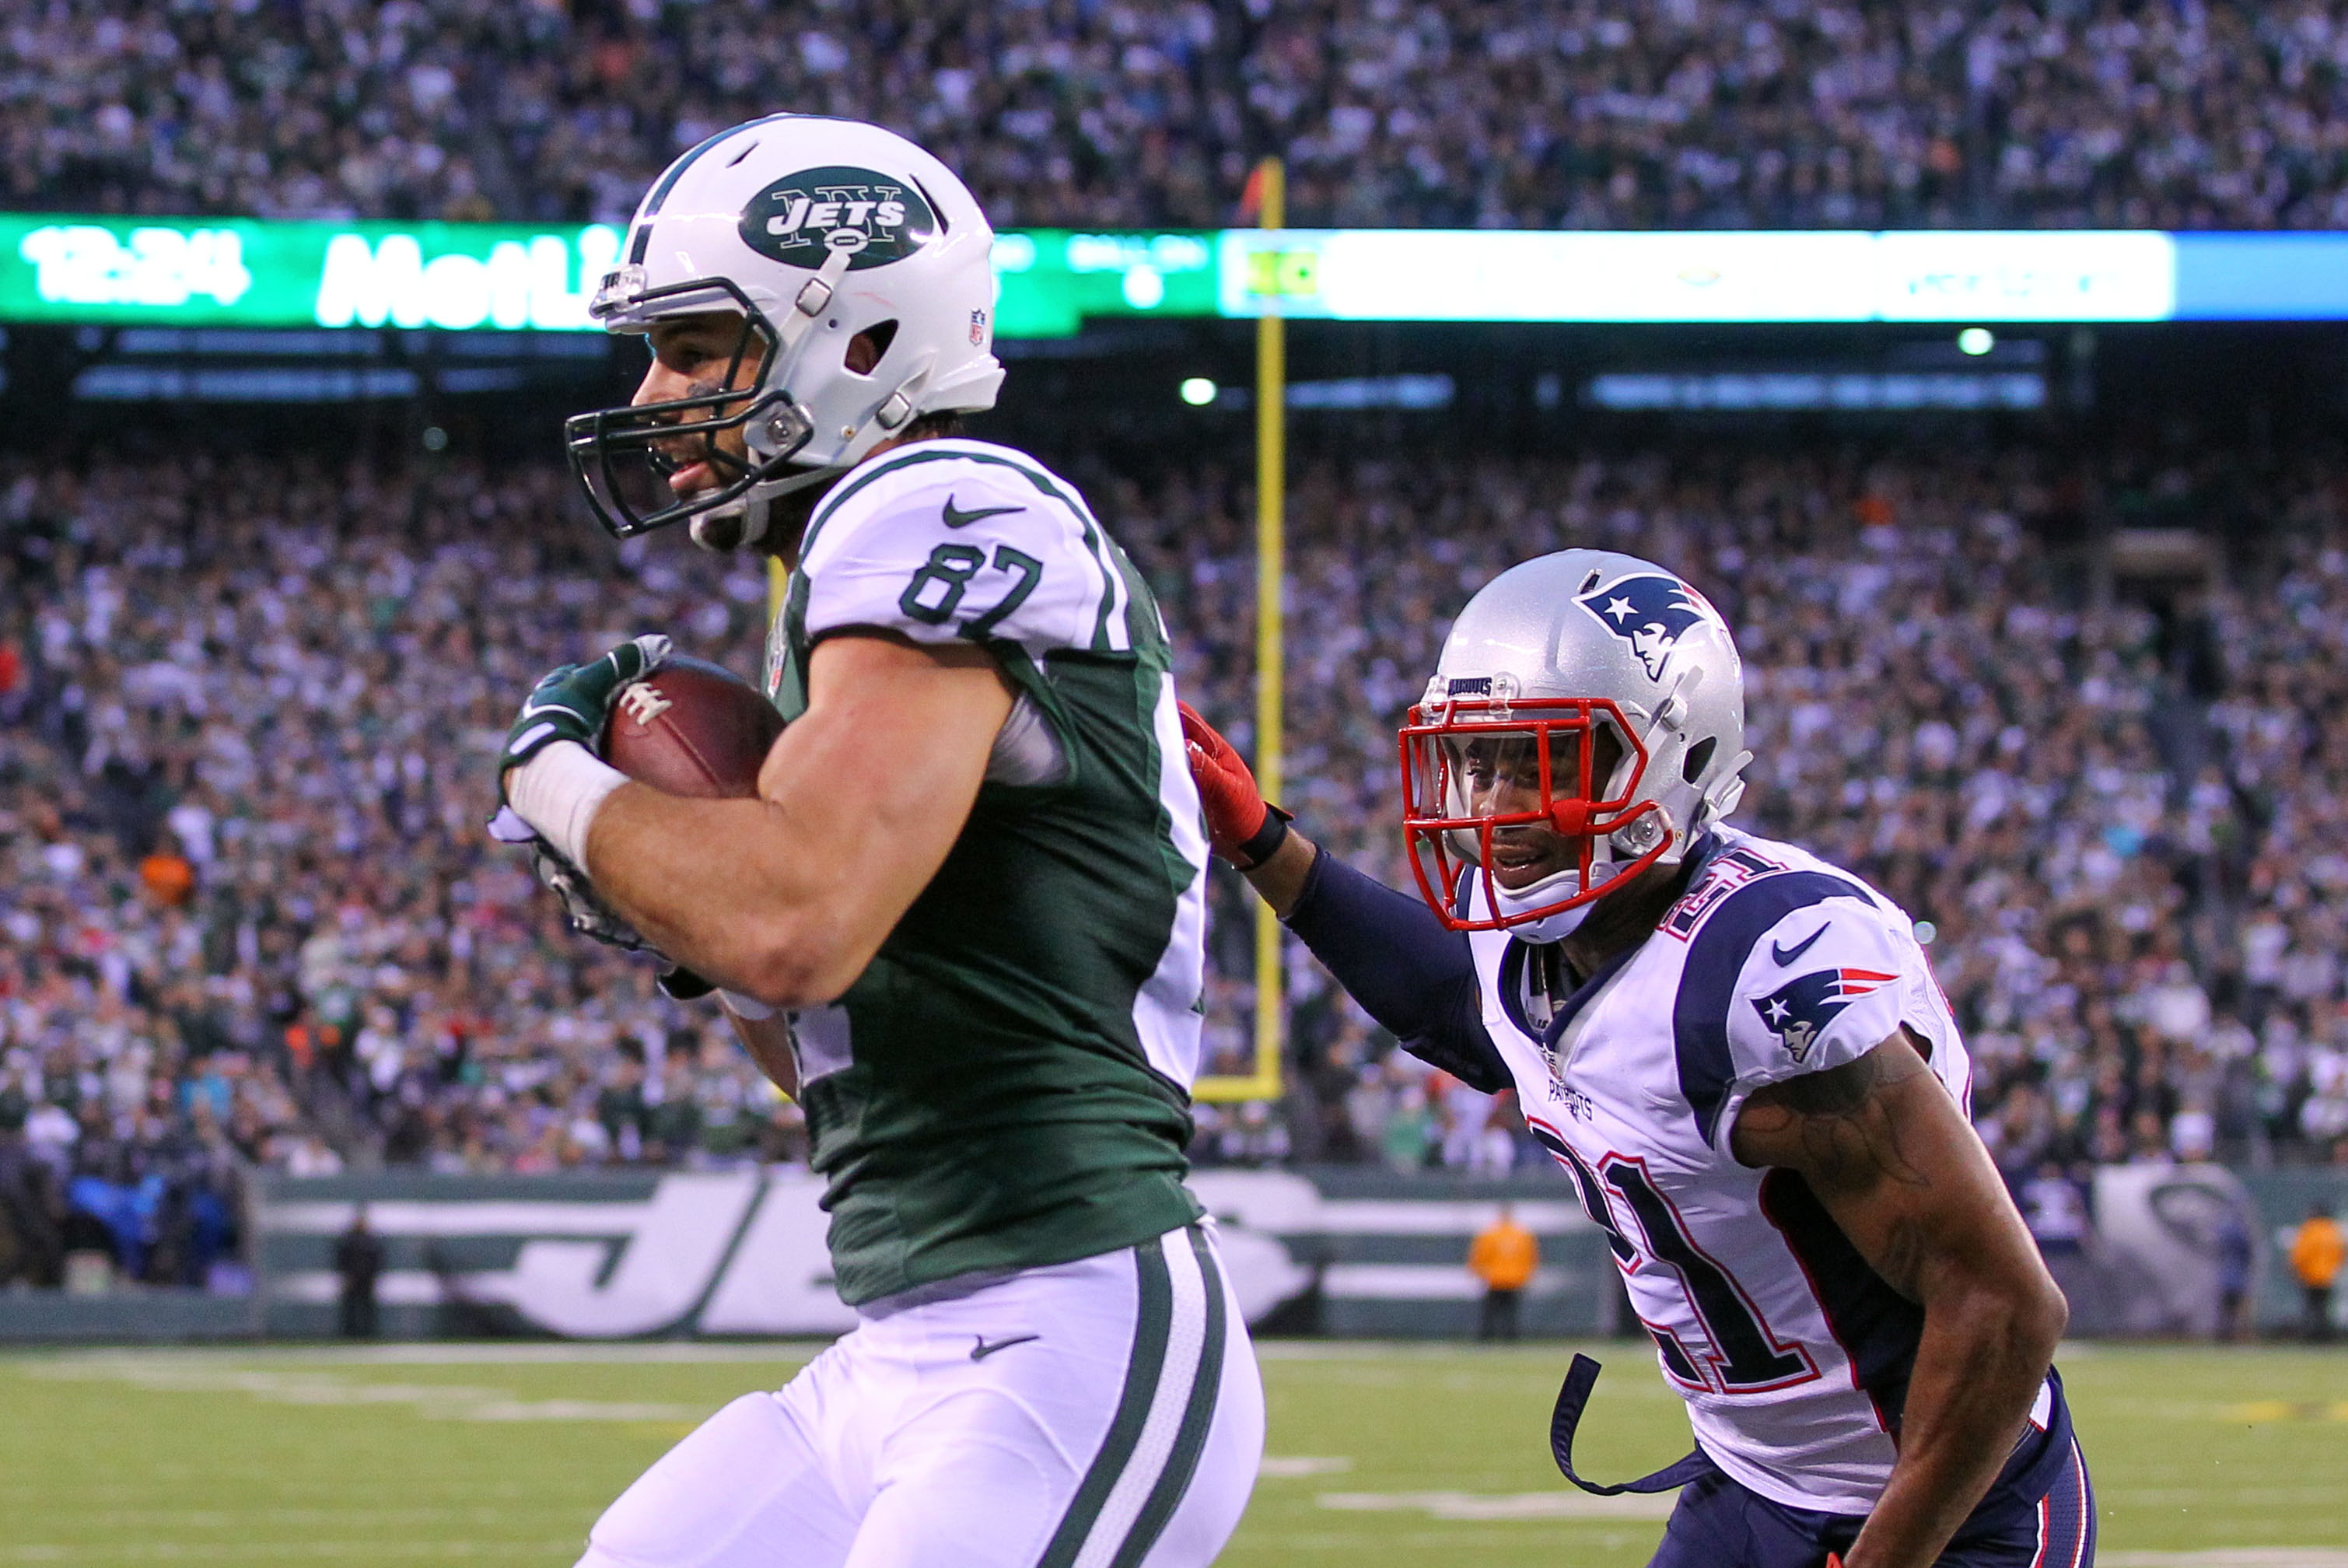 9020151-nfl-new-england-patriots-at-new-york-jets